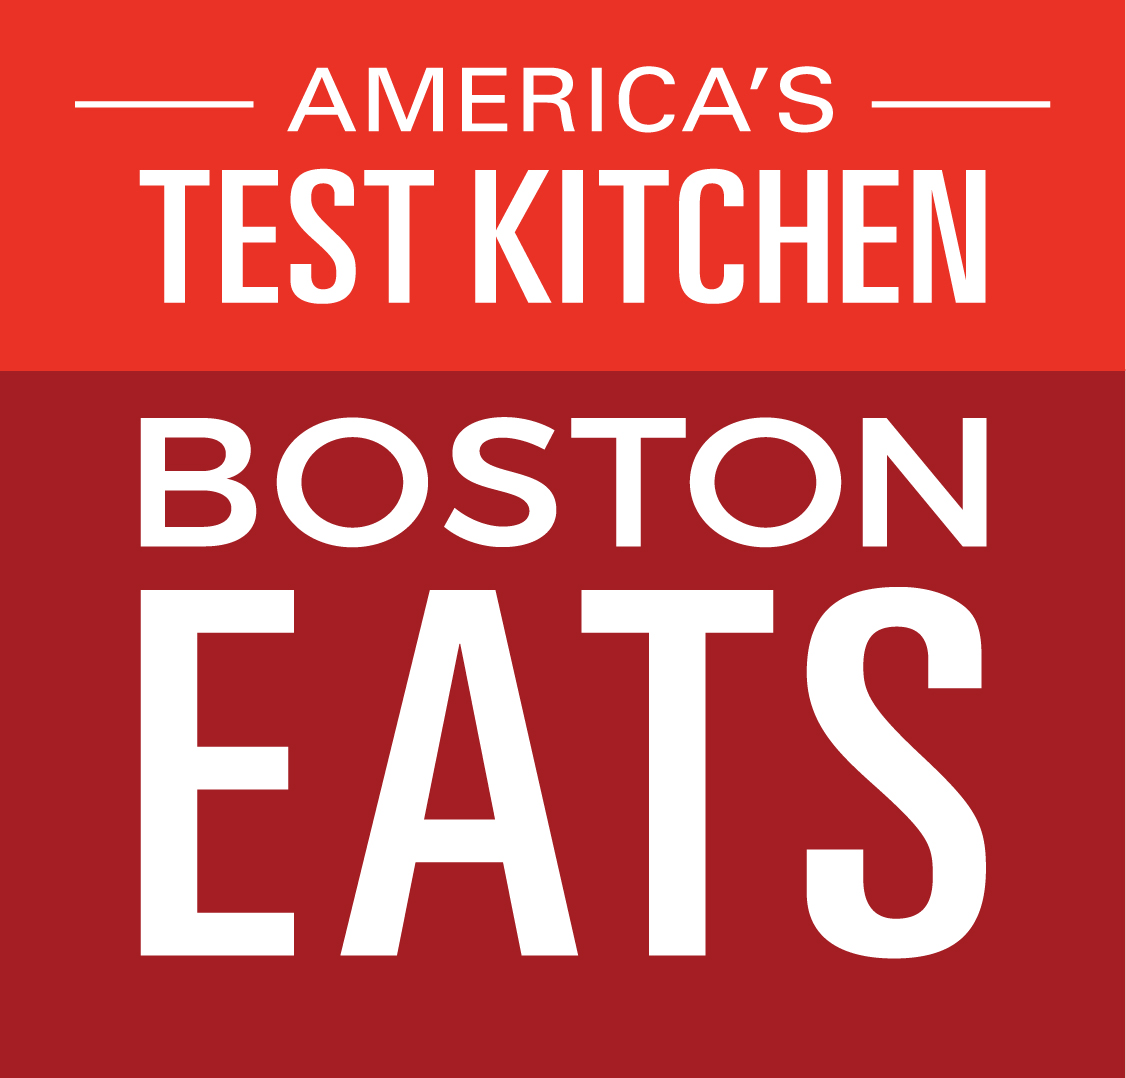 Test Kitchen atk boston eats - cooking, food, and wine festival hosted